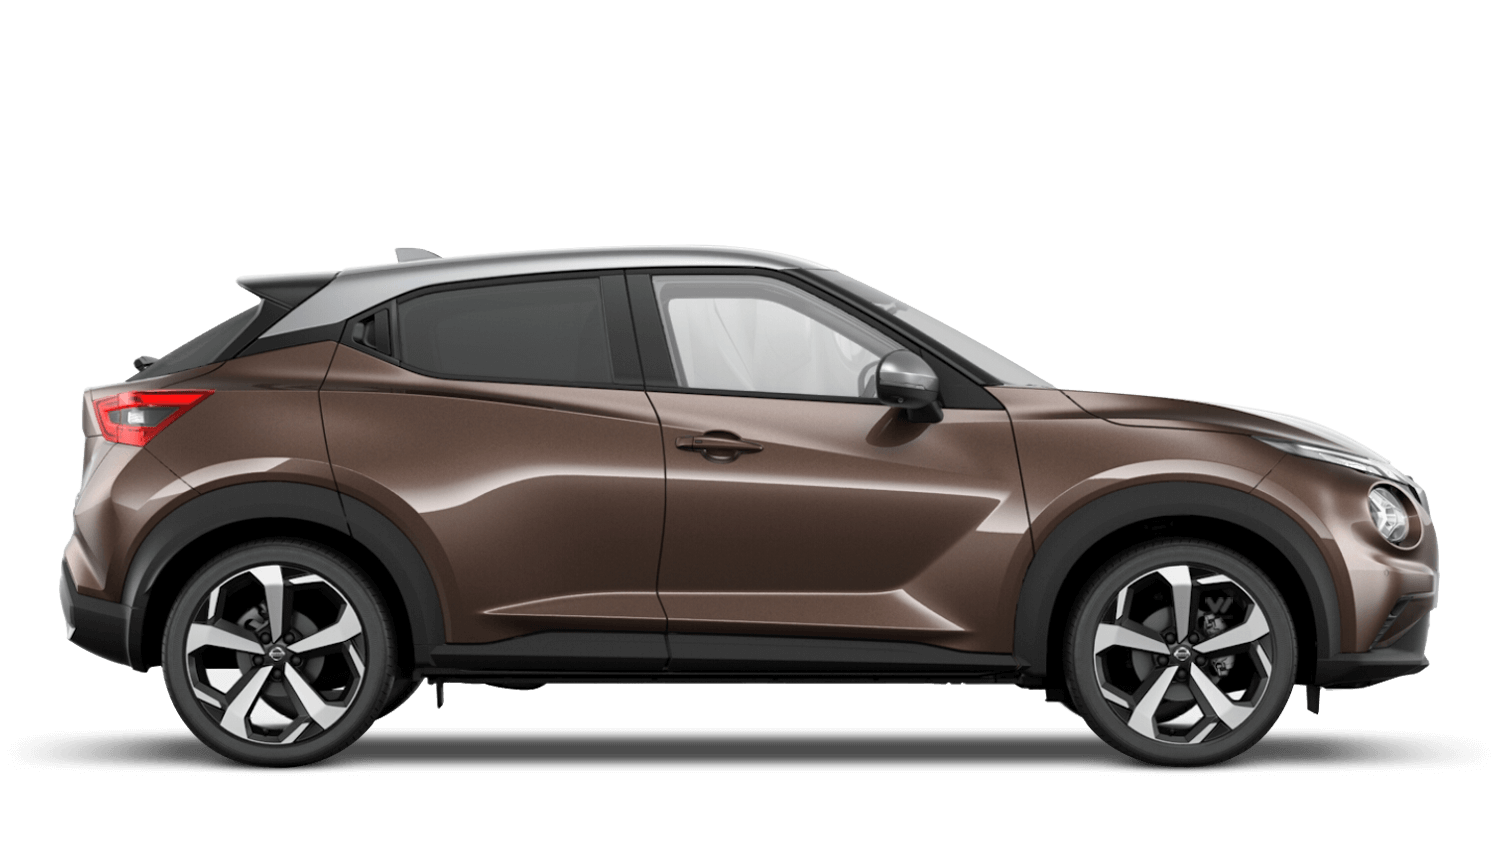 Chestnut Bronze with Blade Silver Roof Next Generation Nissan Juke